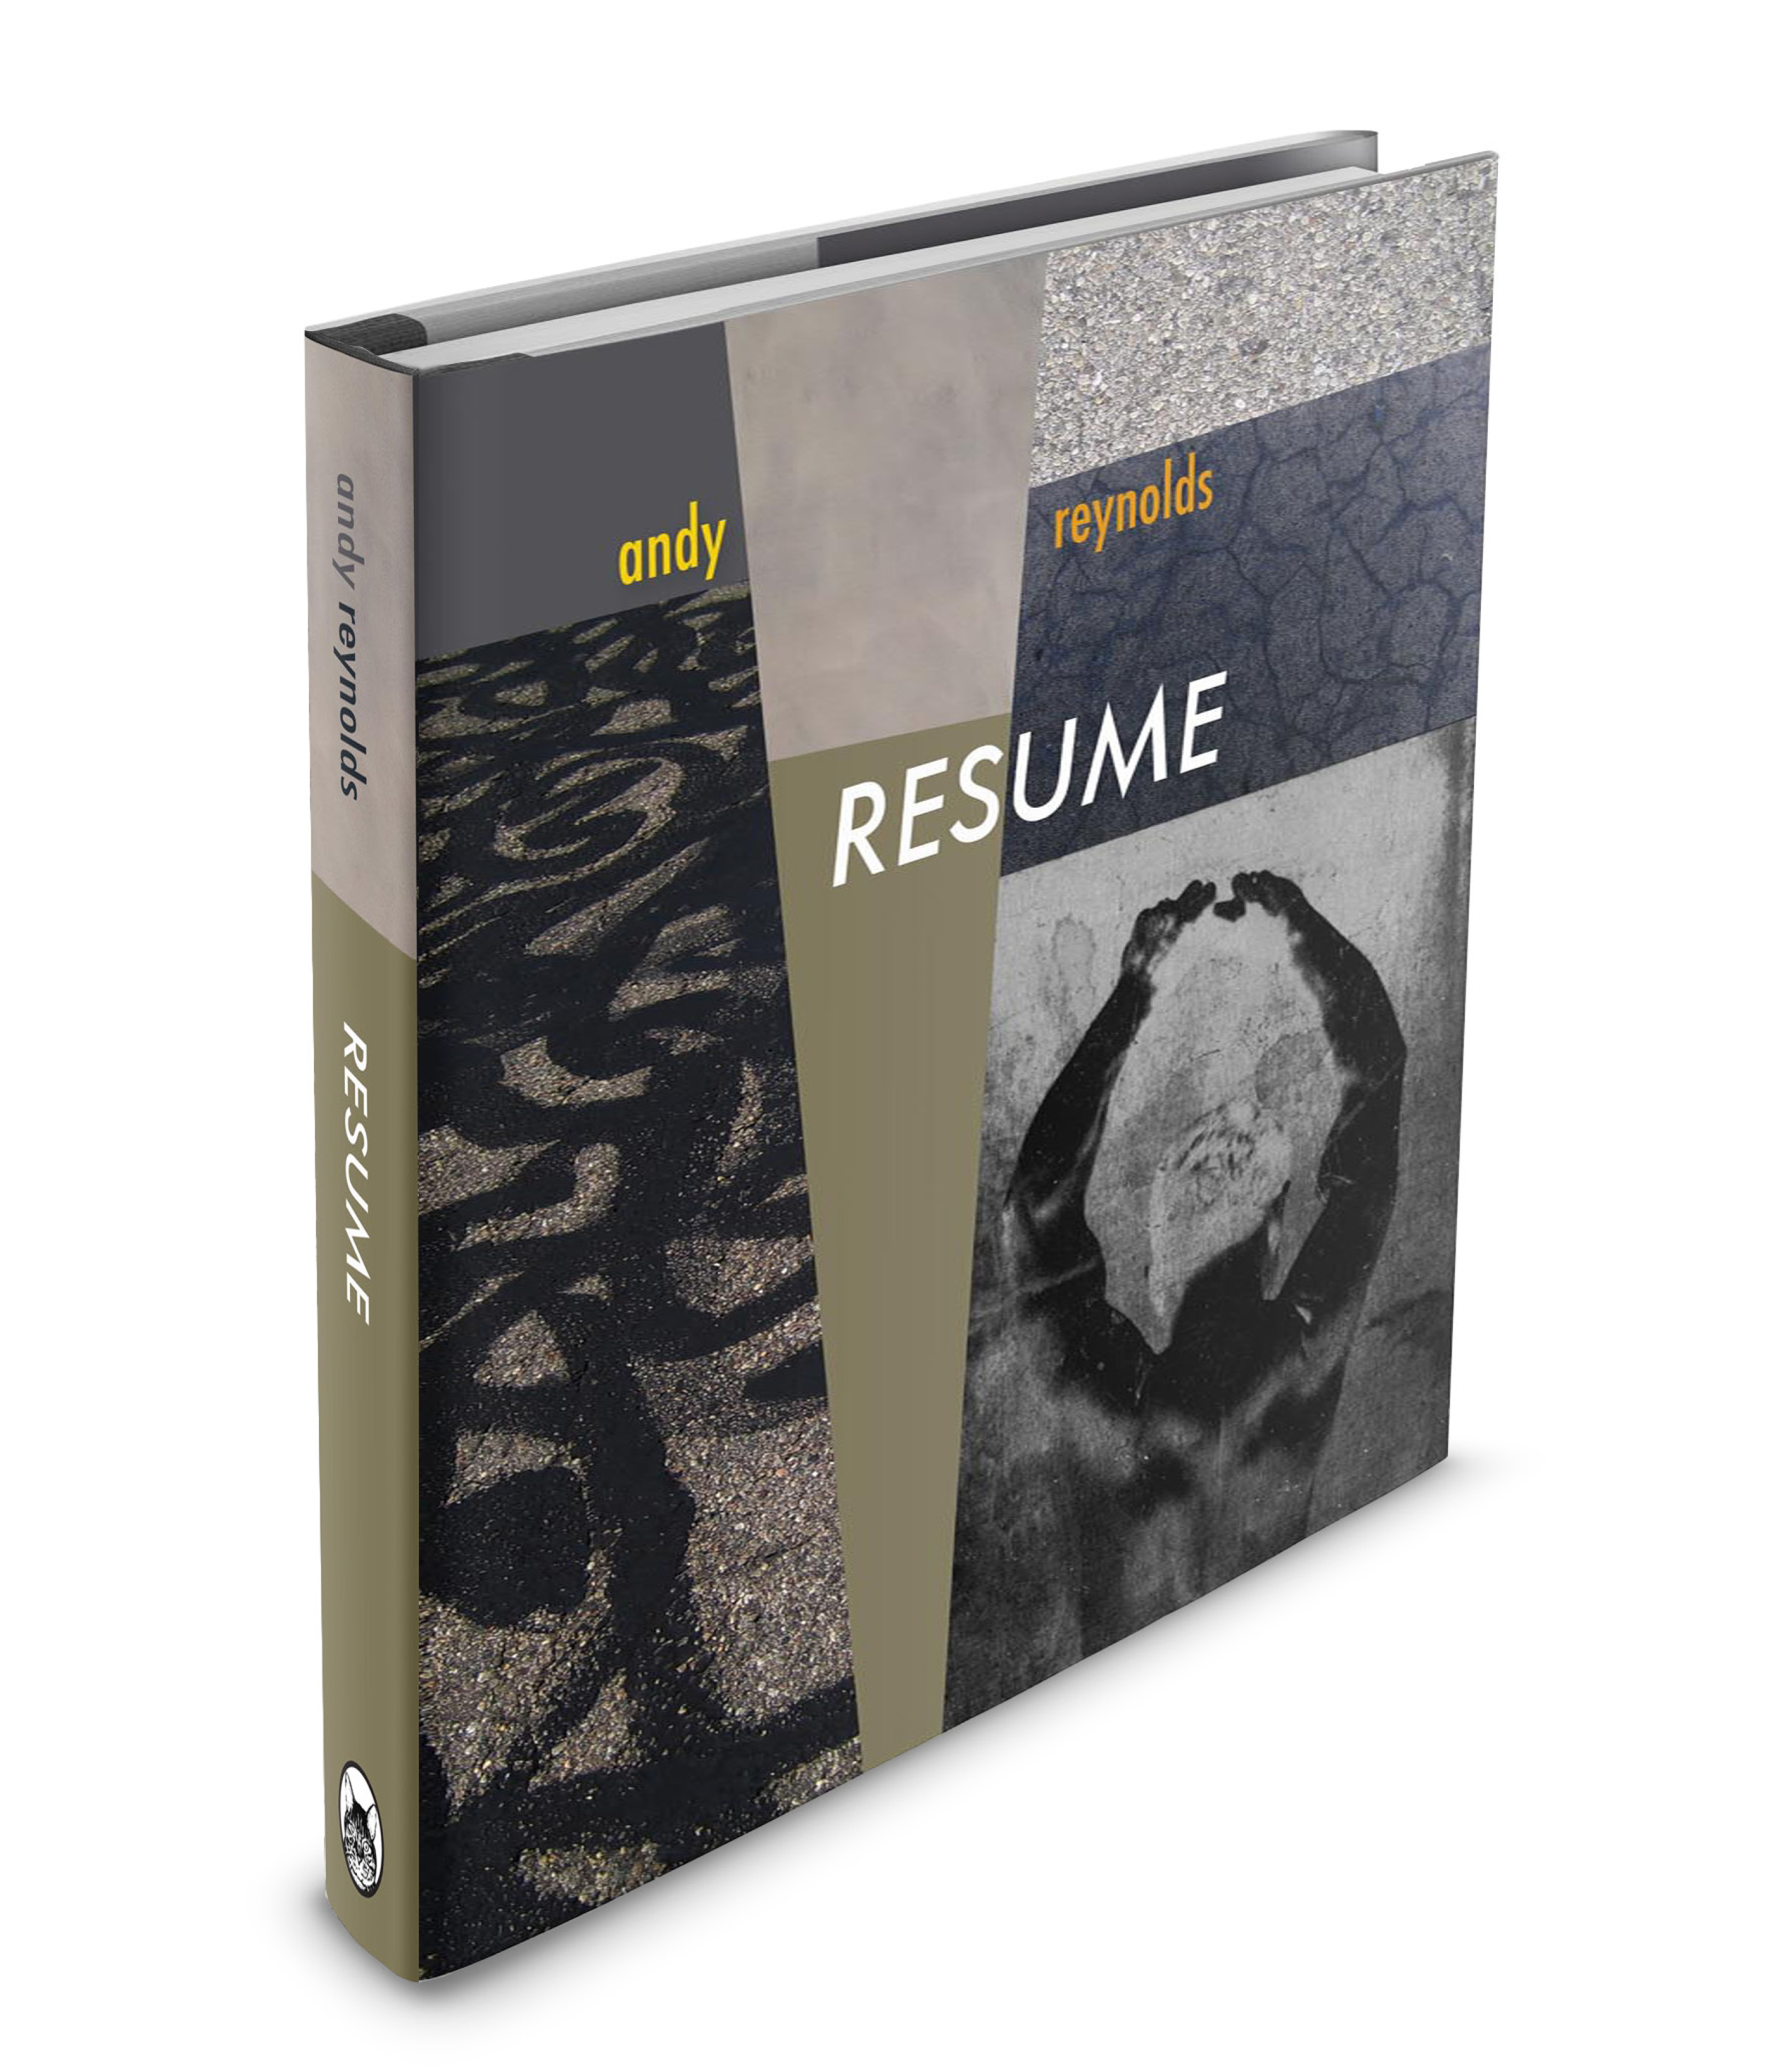 RESUME book 3D view. Click book cover to view the entire book on ISSUU.